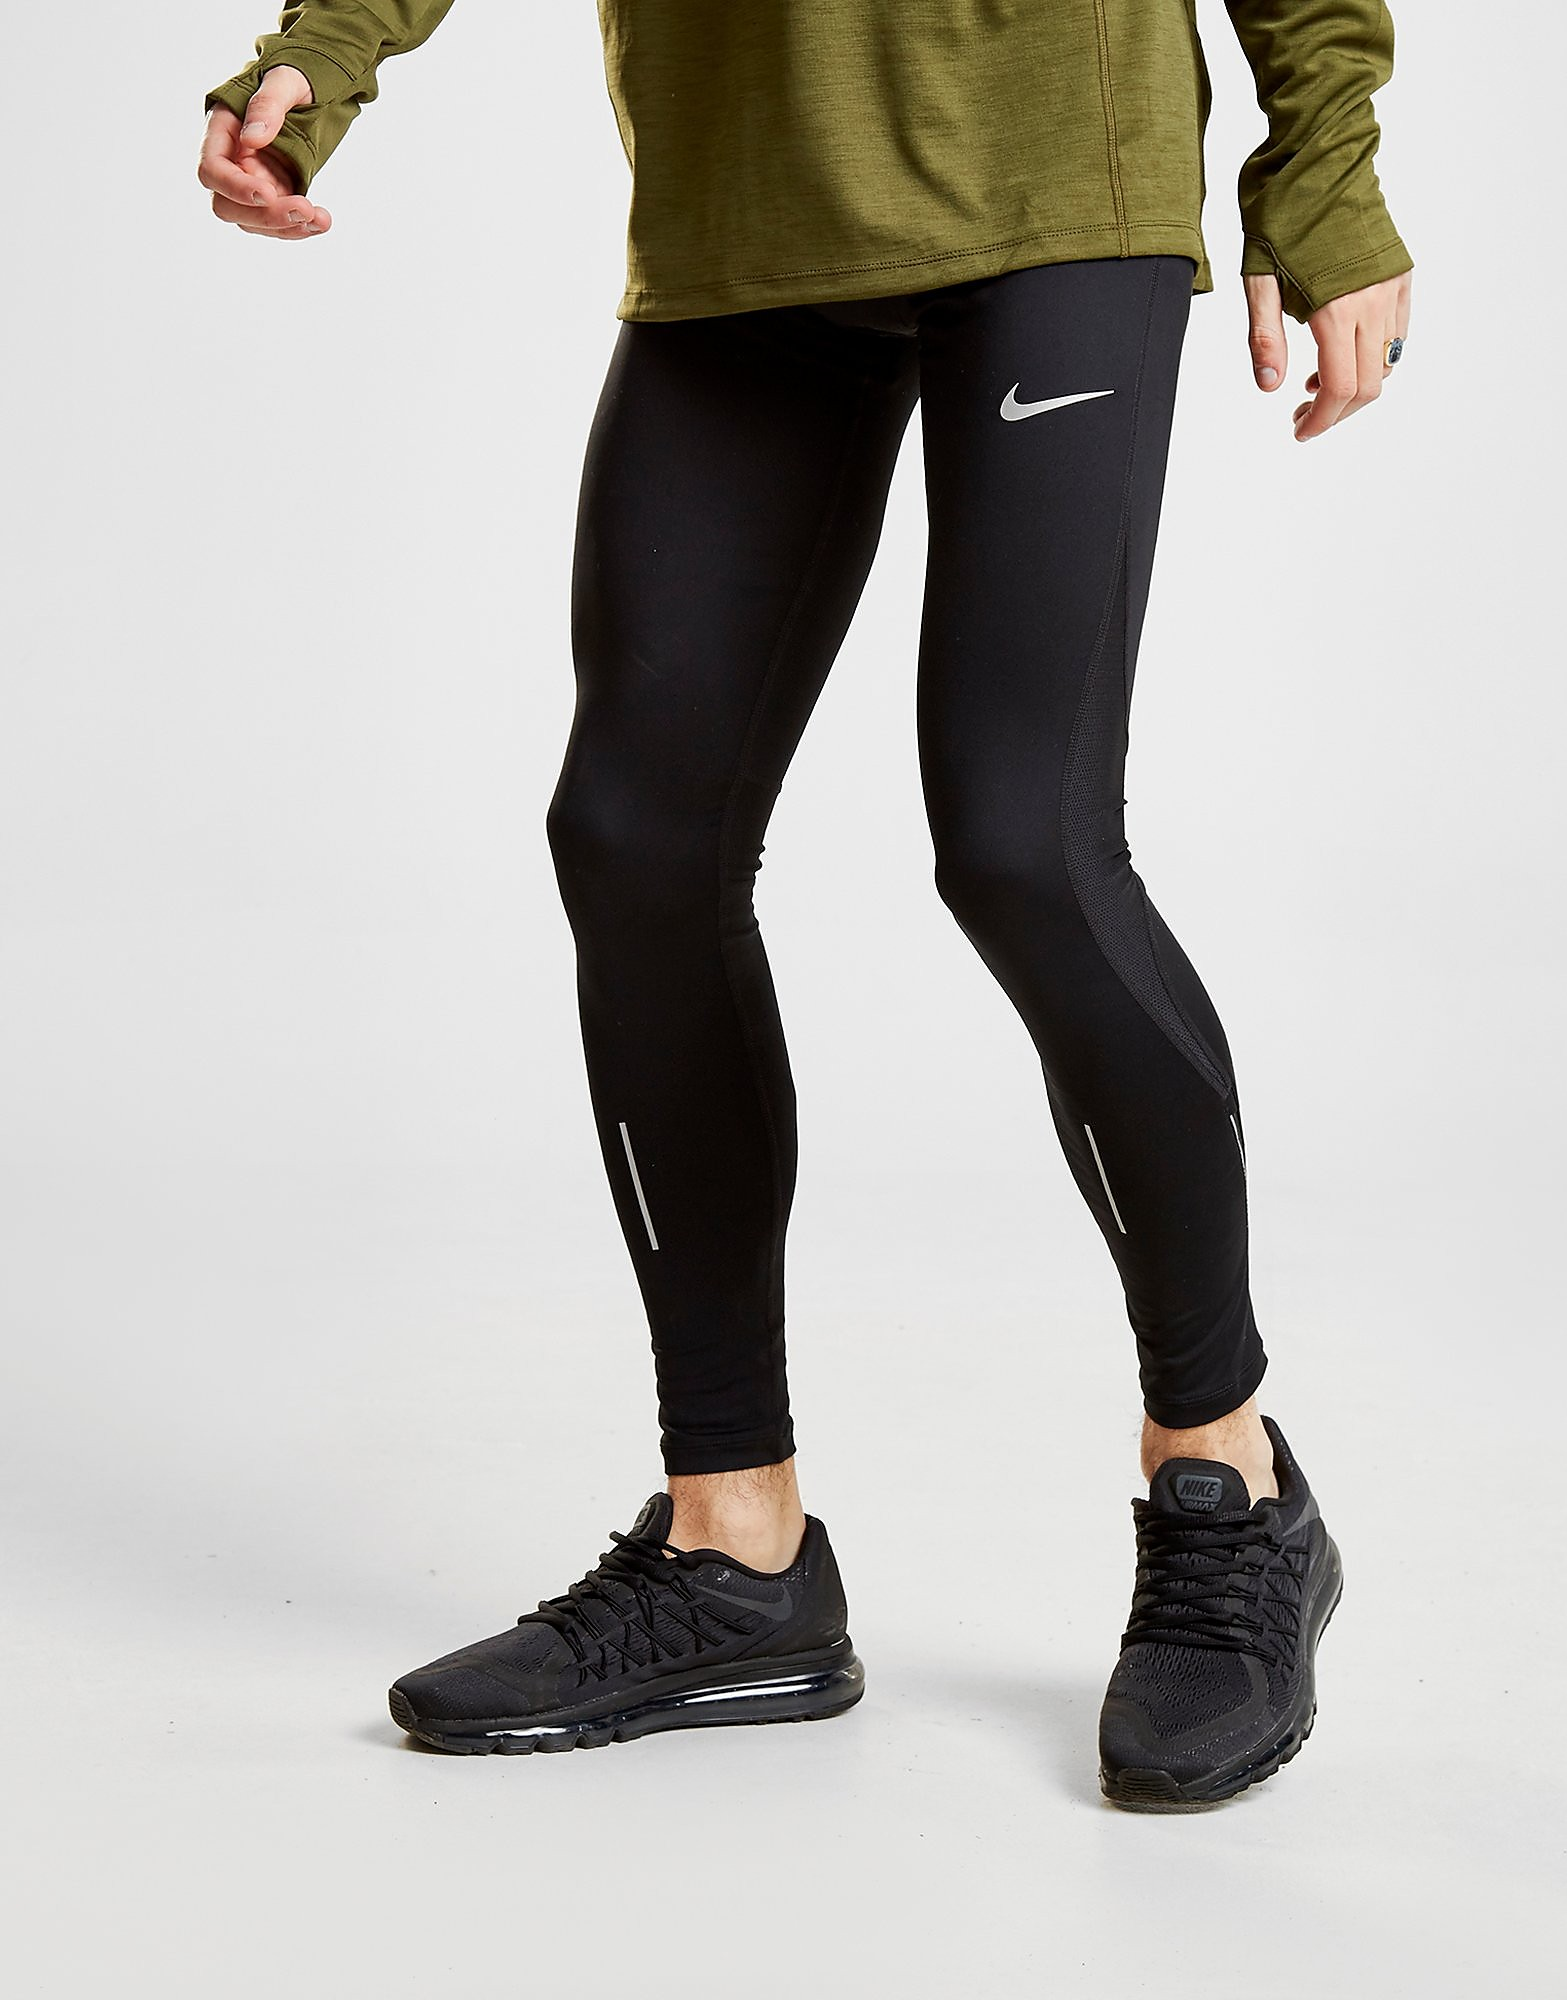 Nike Power Running Tights